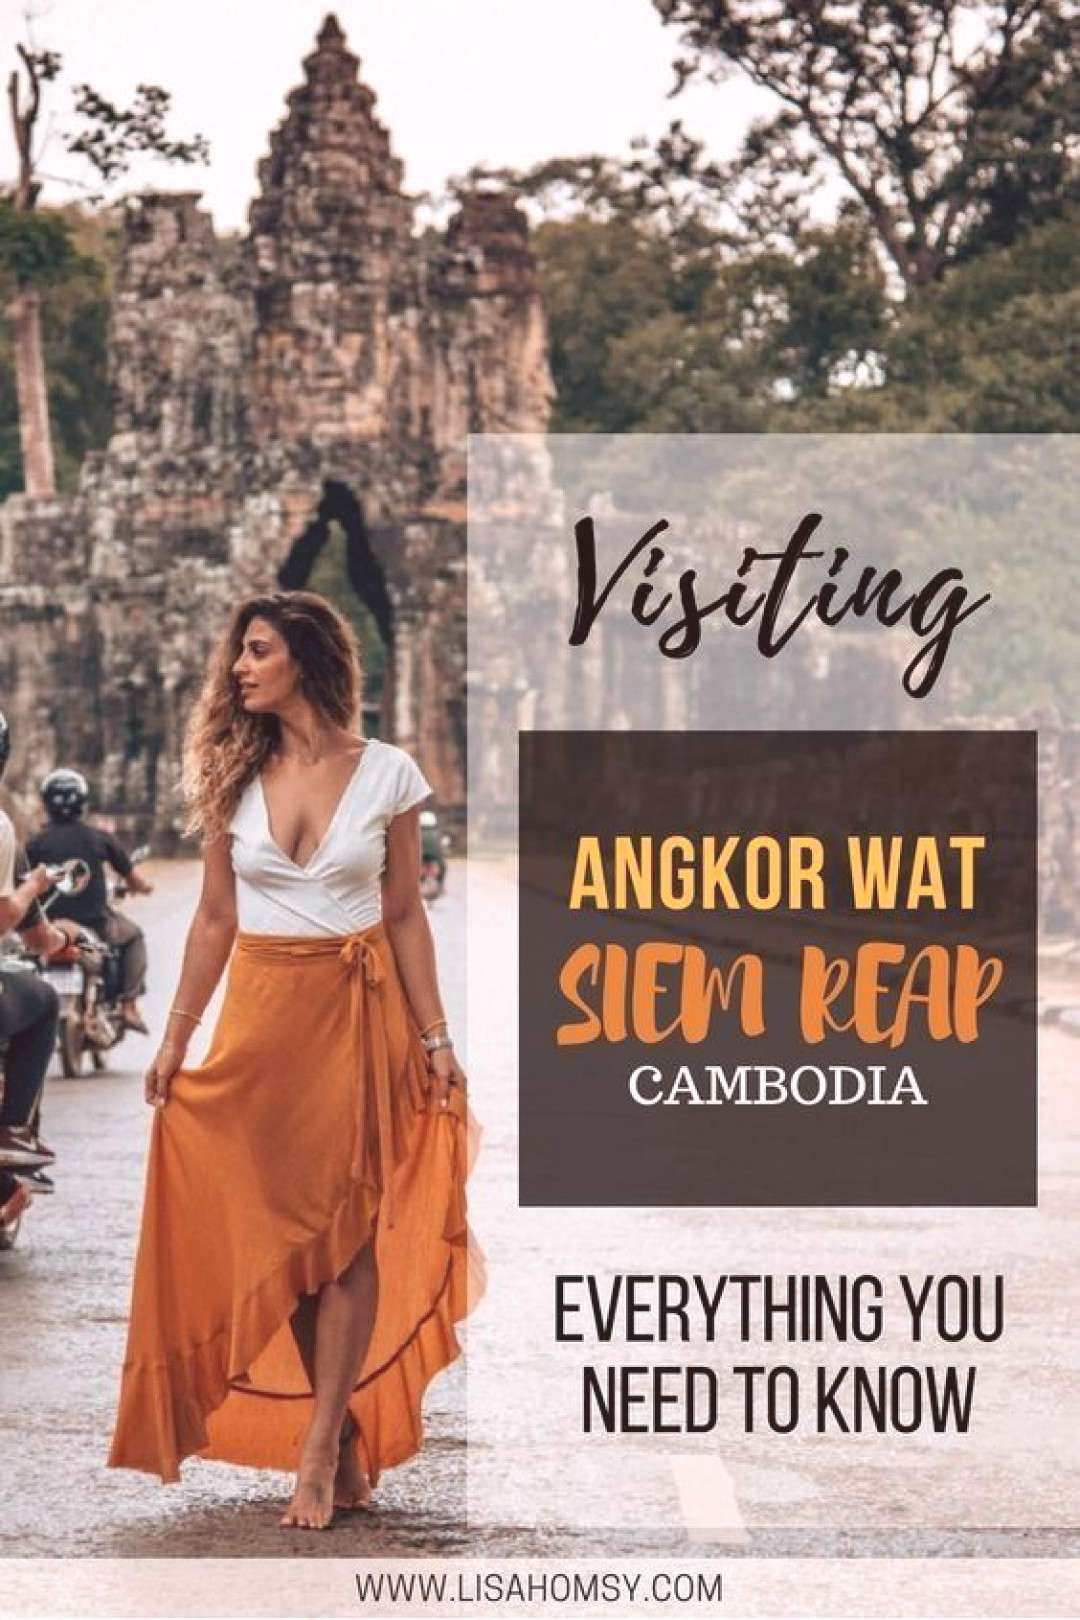 46+ Cheapest travel greece magnet list All the tips you need to visit Angkor Wat Cambodia and the o